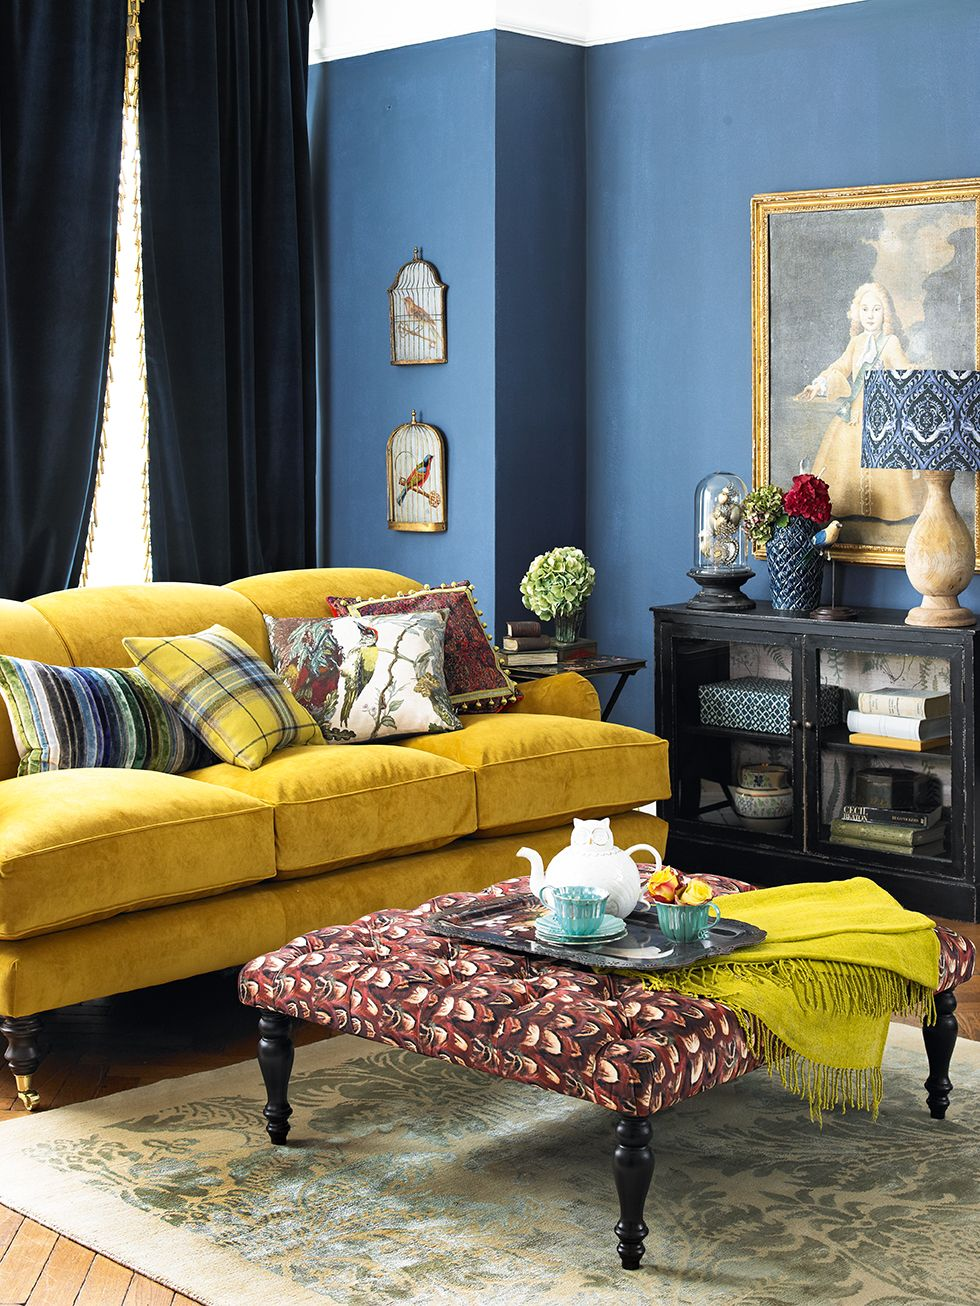 Idea Living Room Walls Stiffkey Blue By Farrow Ball Sofa In House Velvet